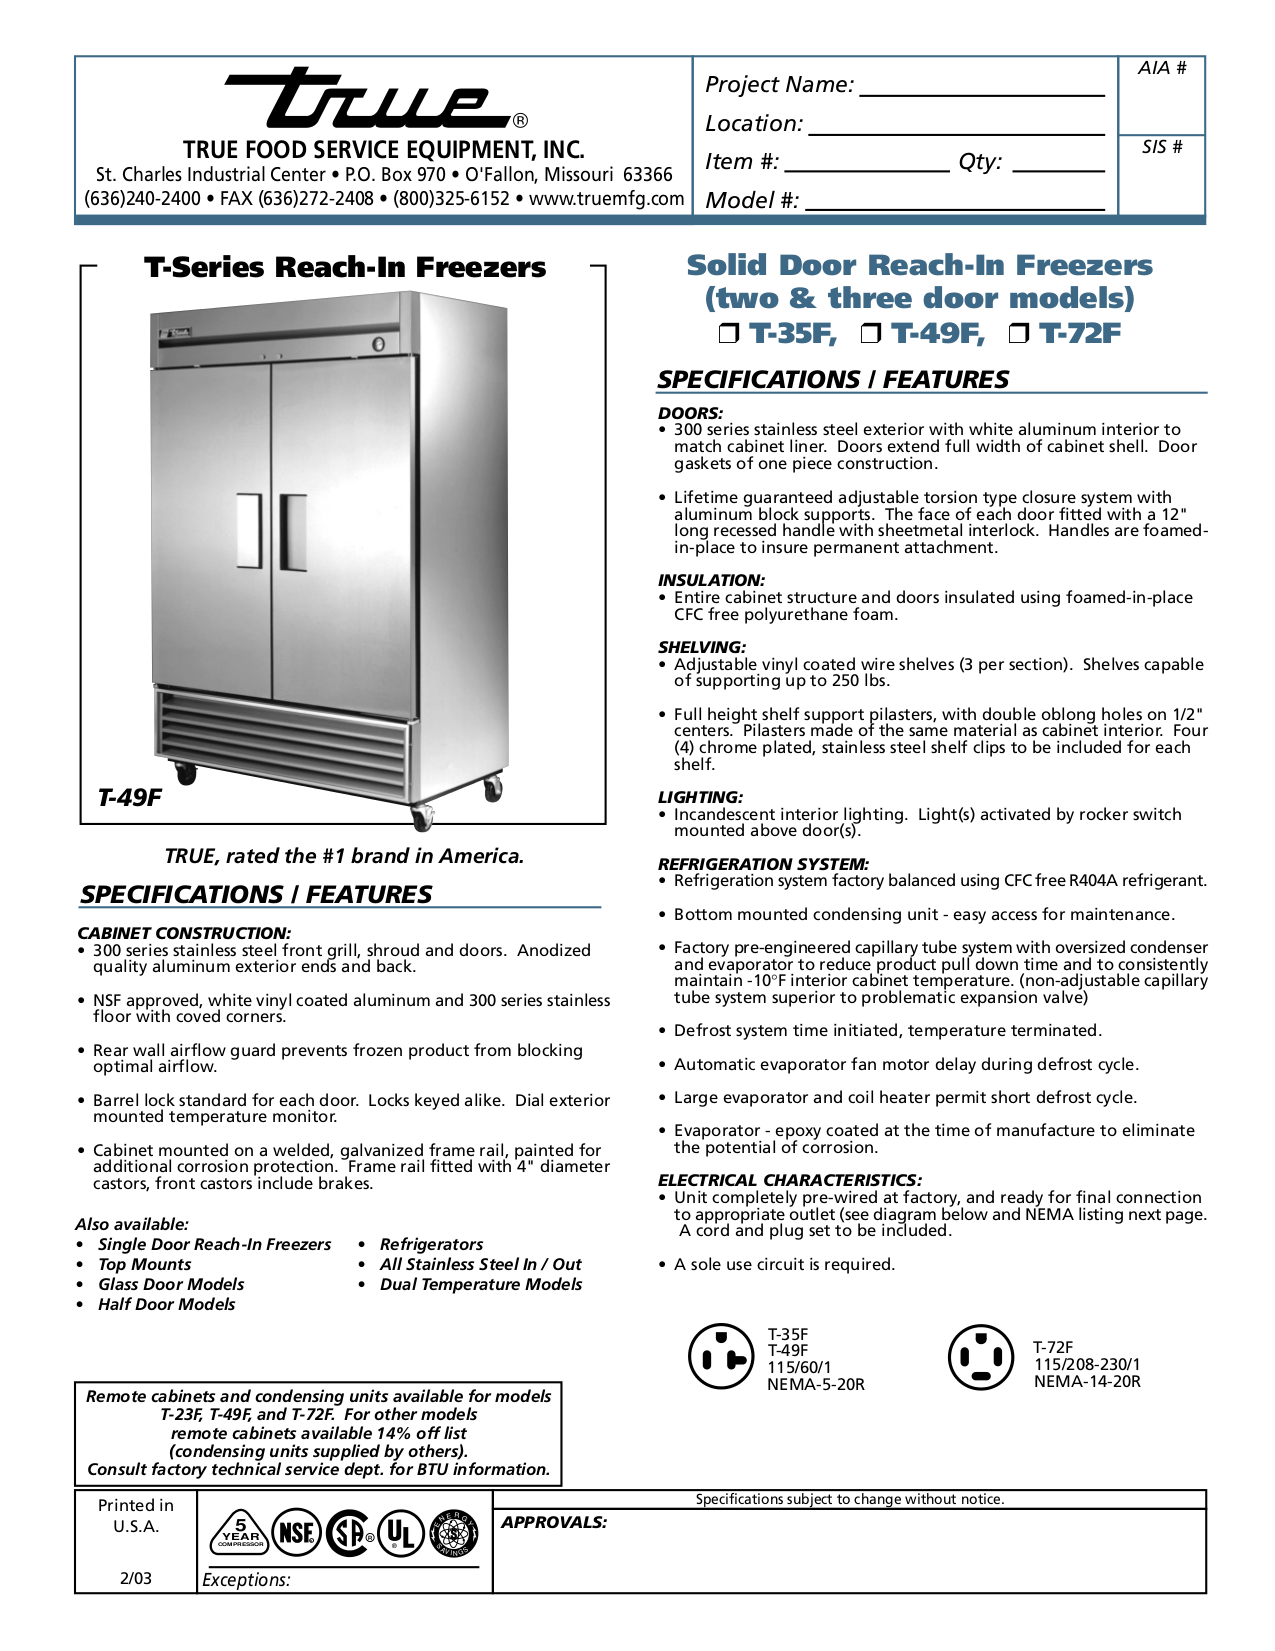 T49F.pdf 0 download free pdf for true t 49f freezer manual true t 49f wiring diagram at gsmportal.co